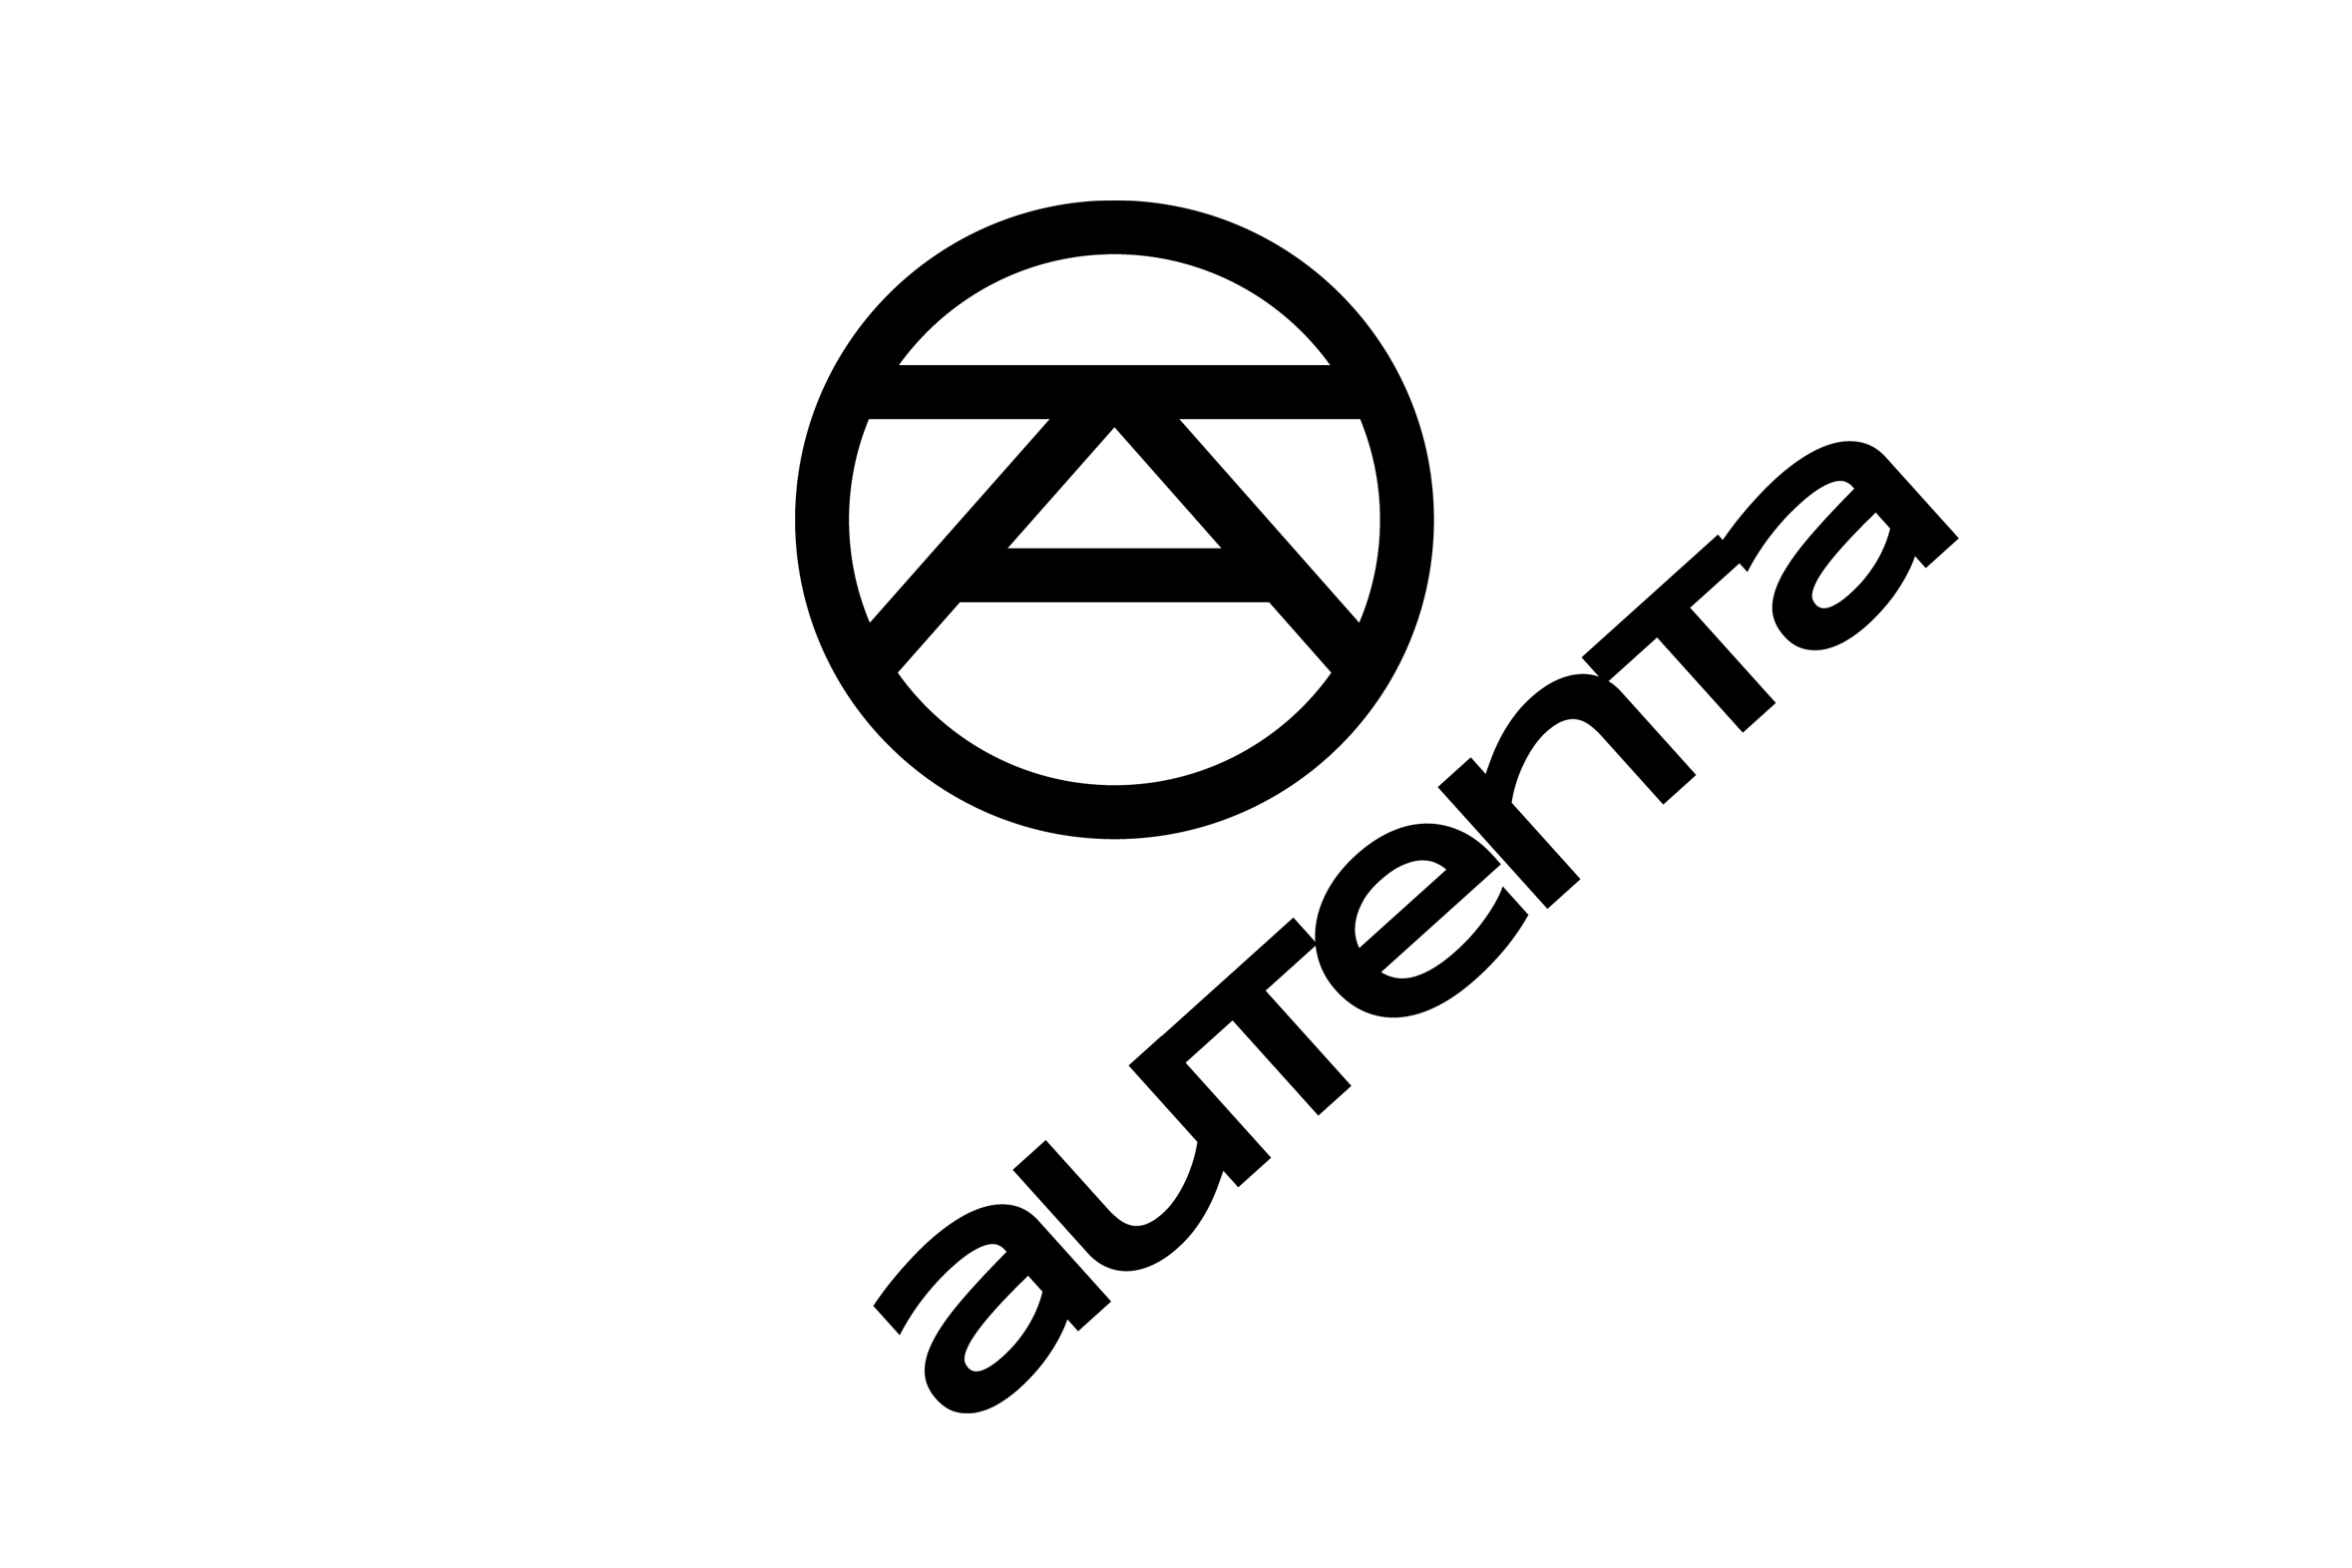 Projekt logo agencji marketingu Autenta